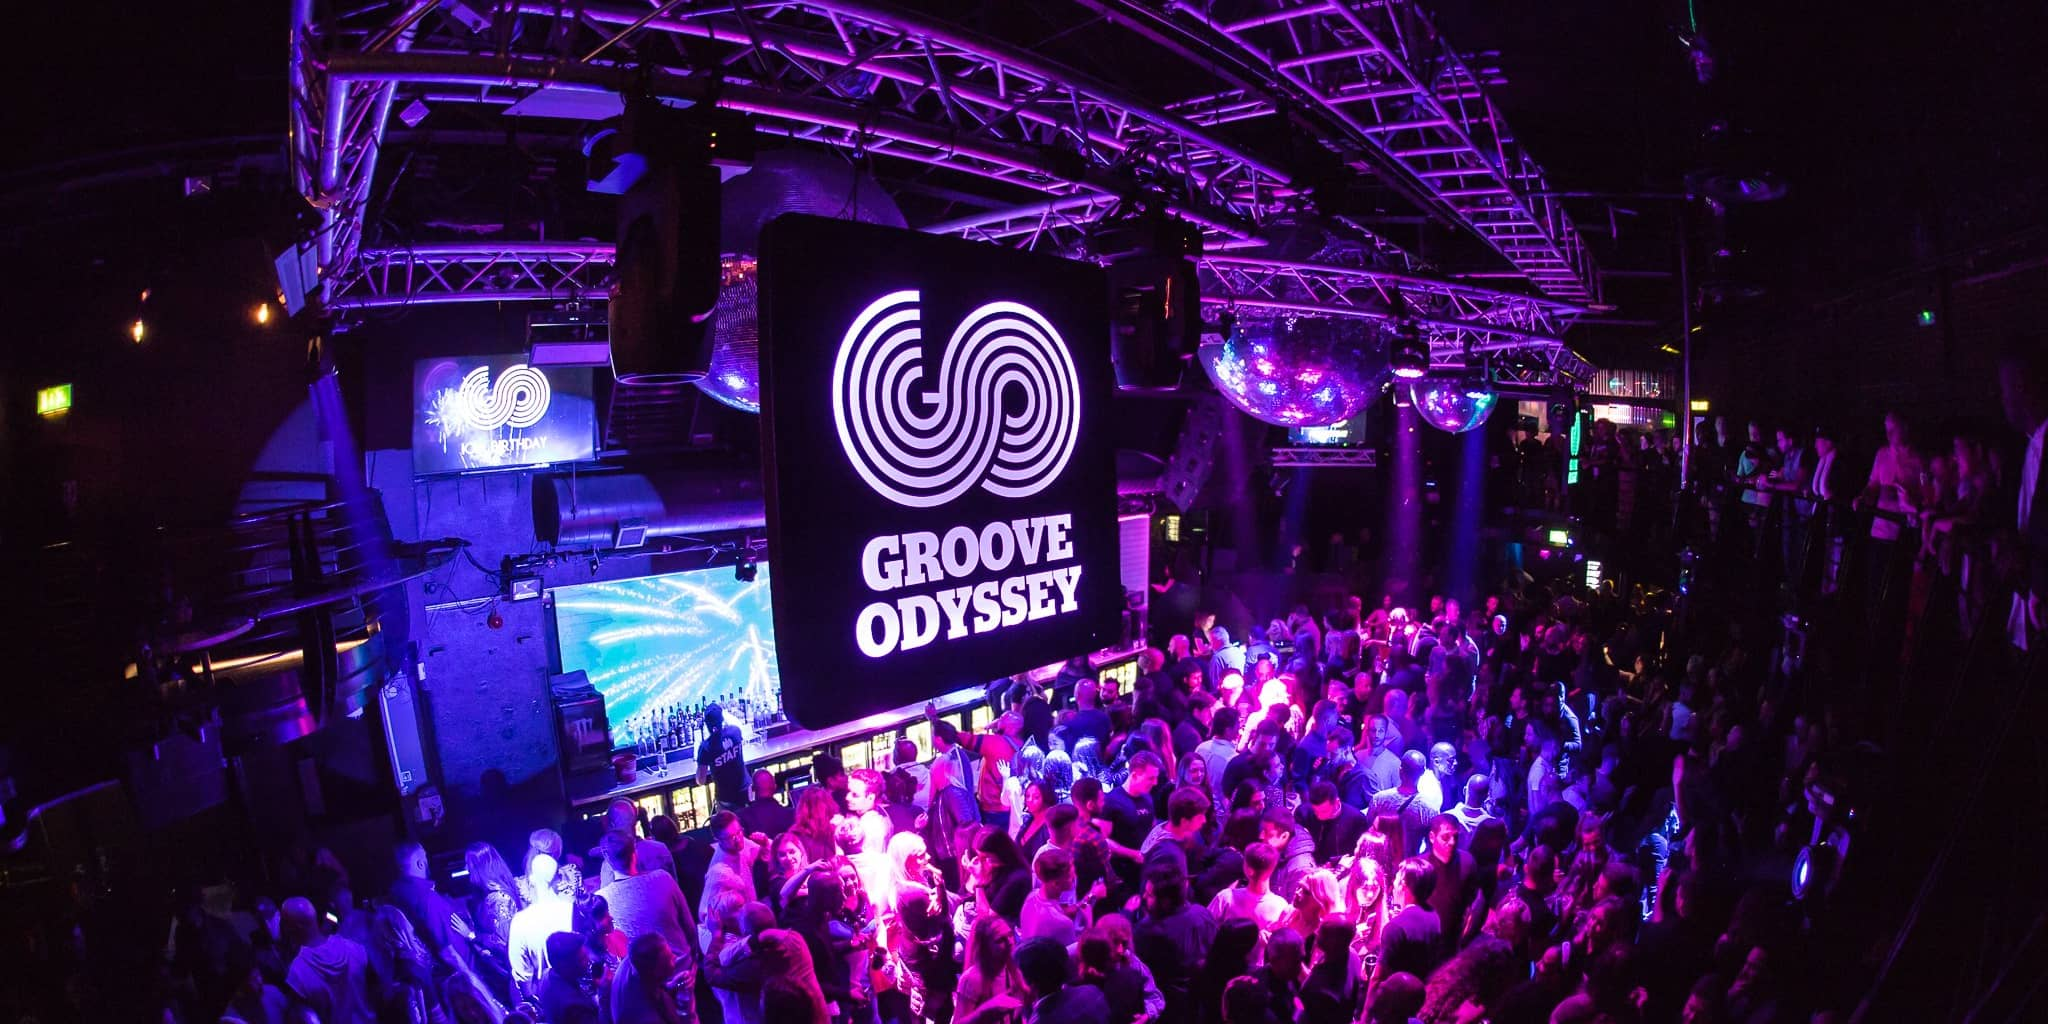 Groove Odyssey performing live in The Box at London's Ministry of Sound